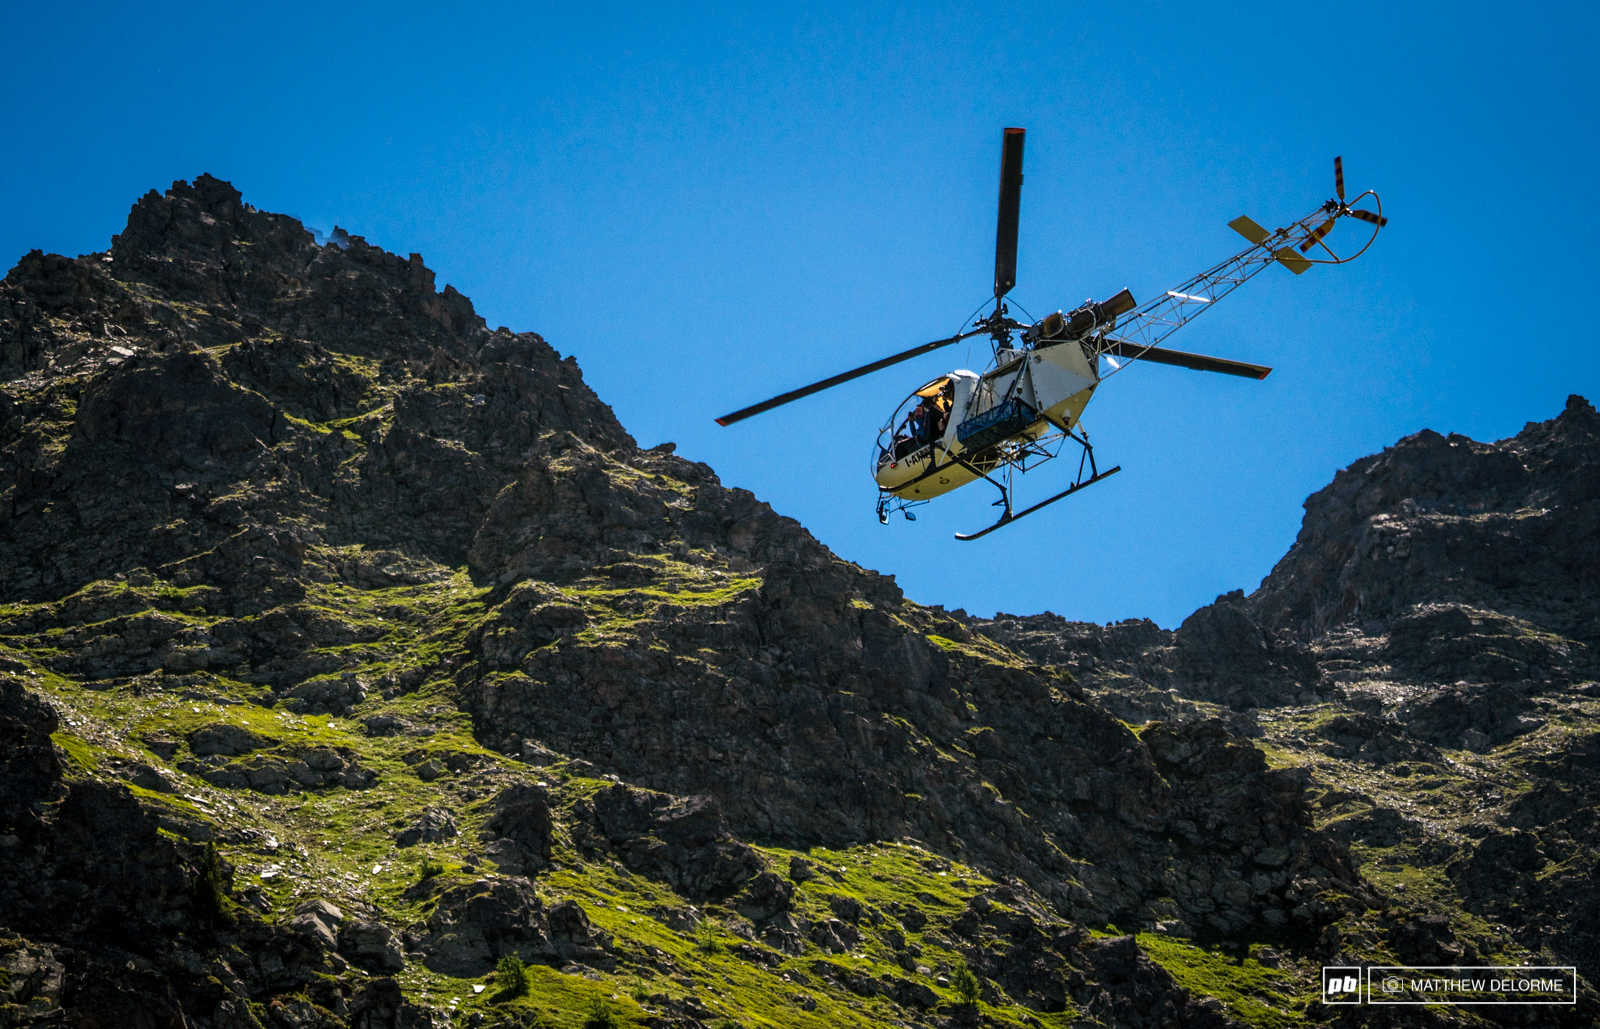 The EWS video crew was treated to a day in flying scaffolding for some stellar areal footage.